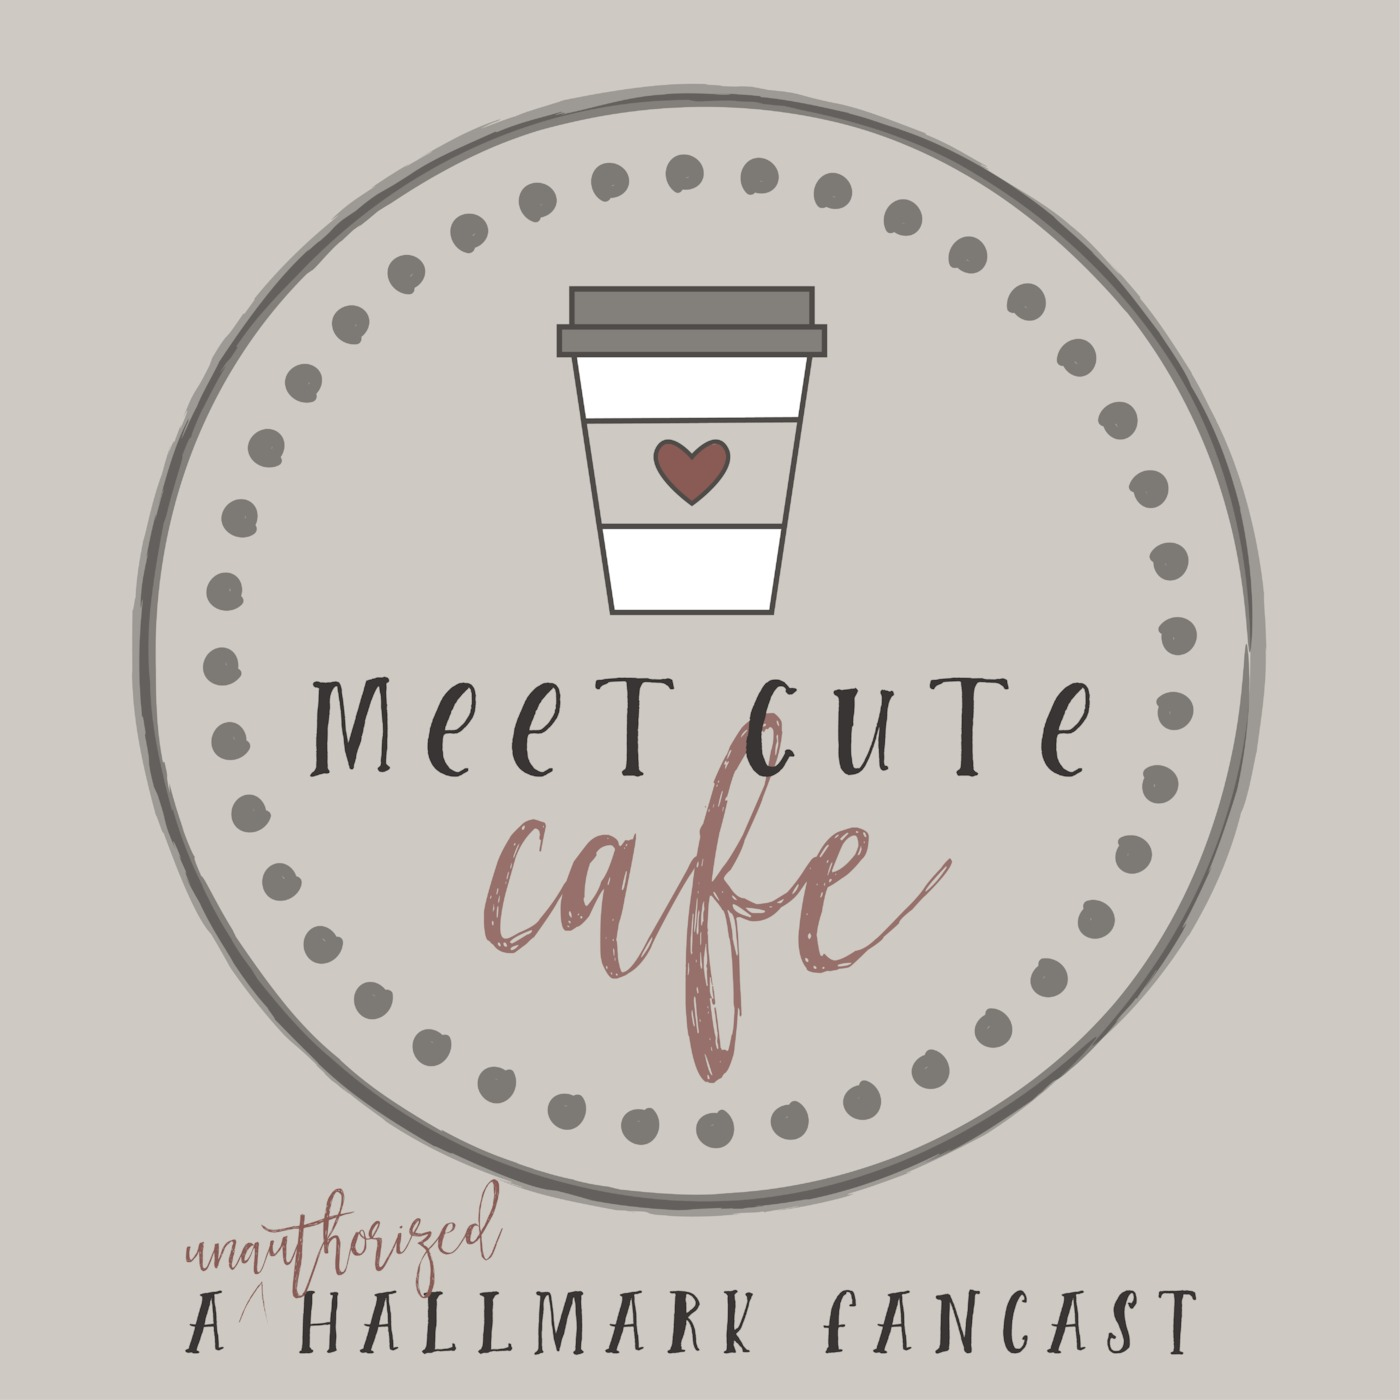 Miss Christmas Cast.Miss Christmas Meet Cute Cafe A Hallmark Fancast Podcast